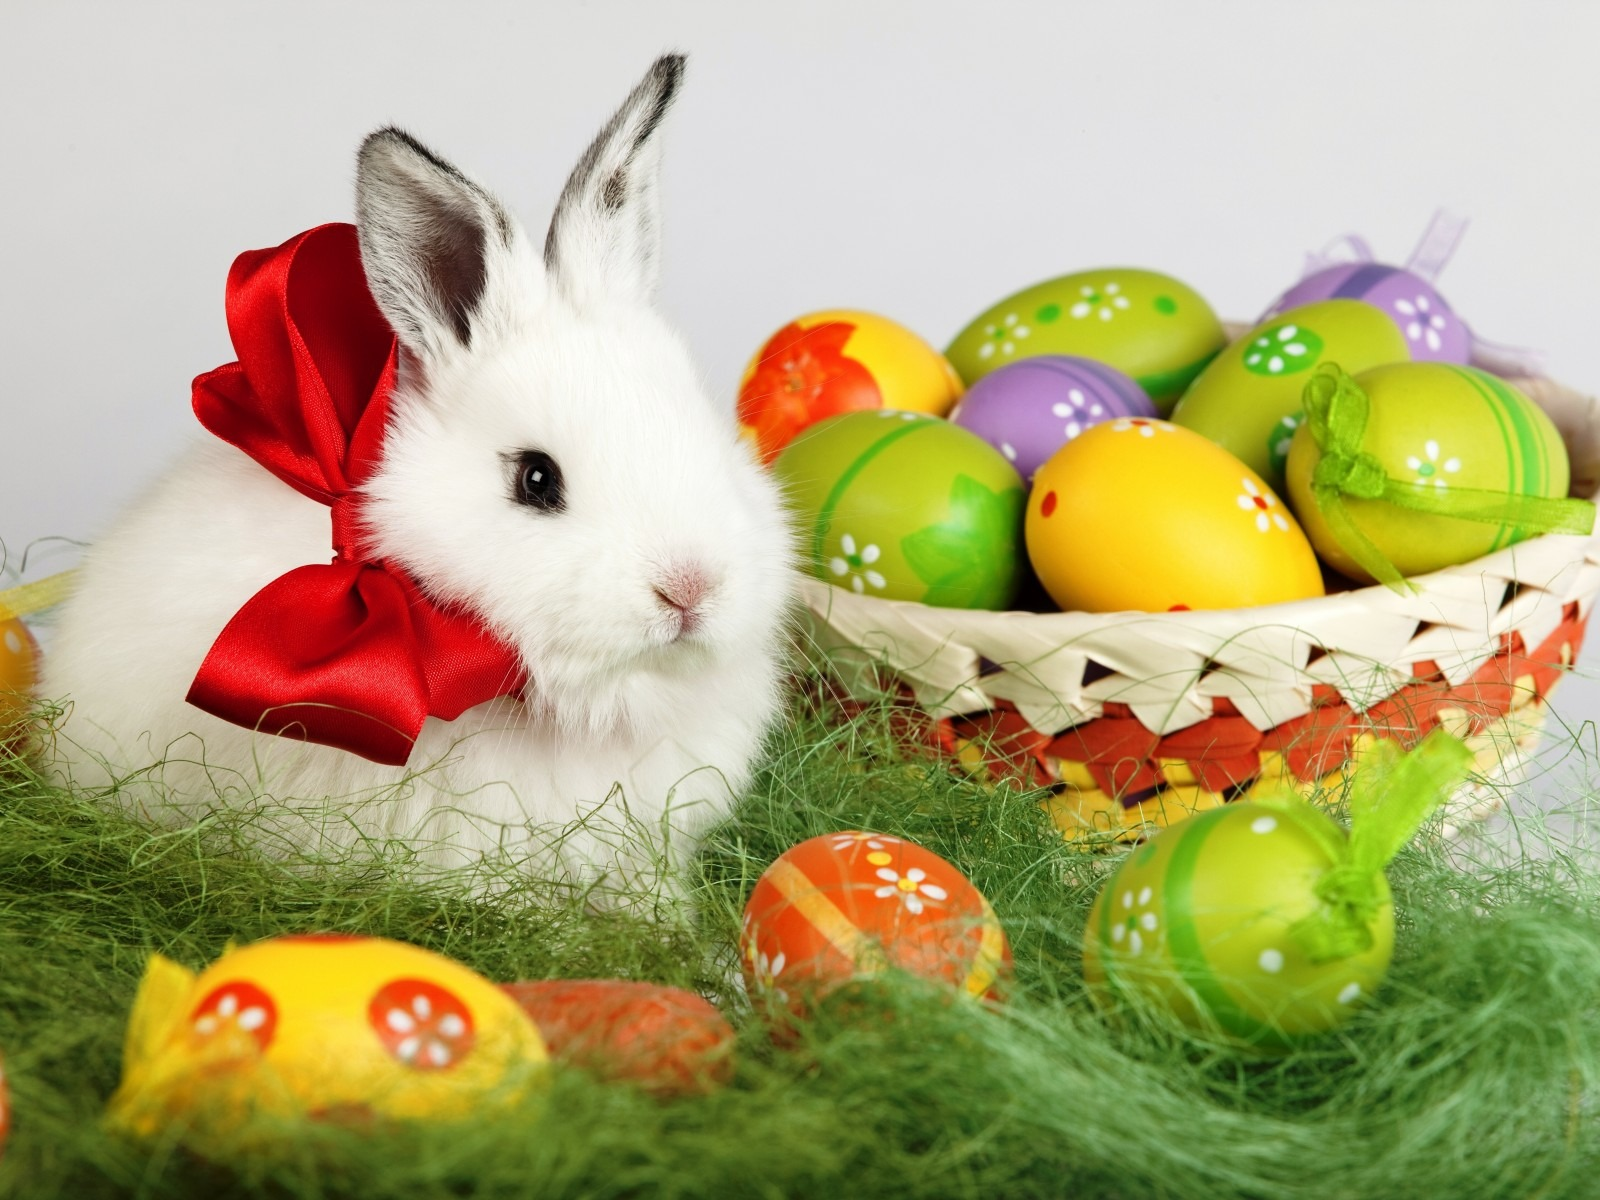 Easter wouldn't be the same without eggs. They've been a part of the holiday's tradition for a long time and they are pretty much universal.